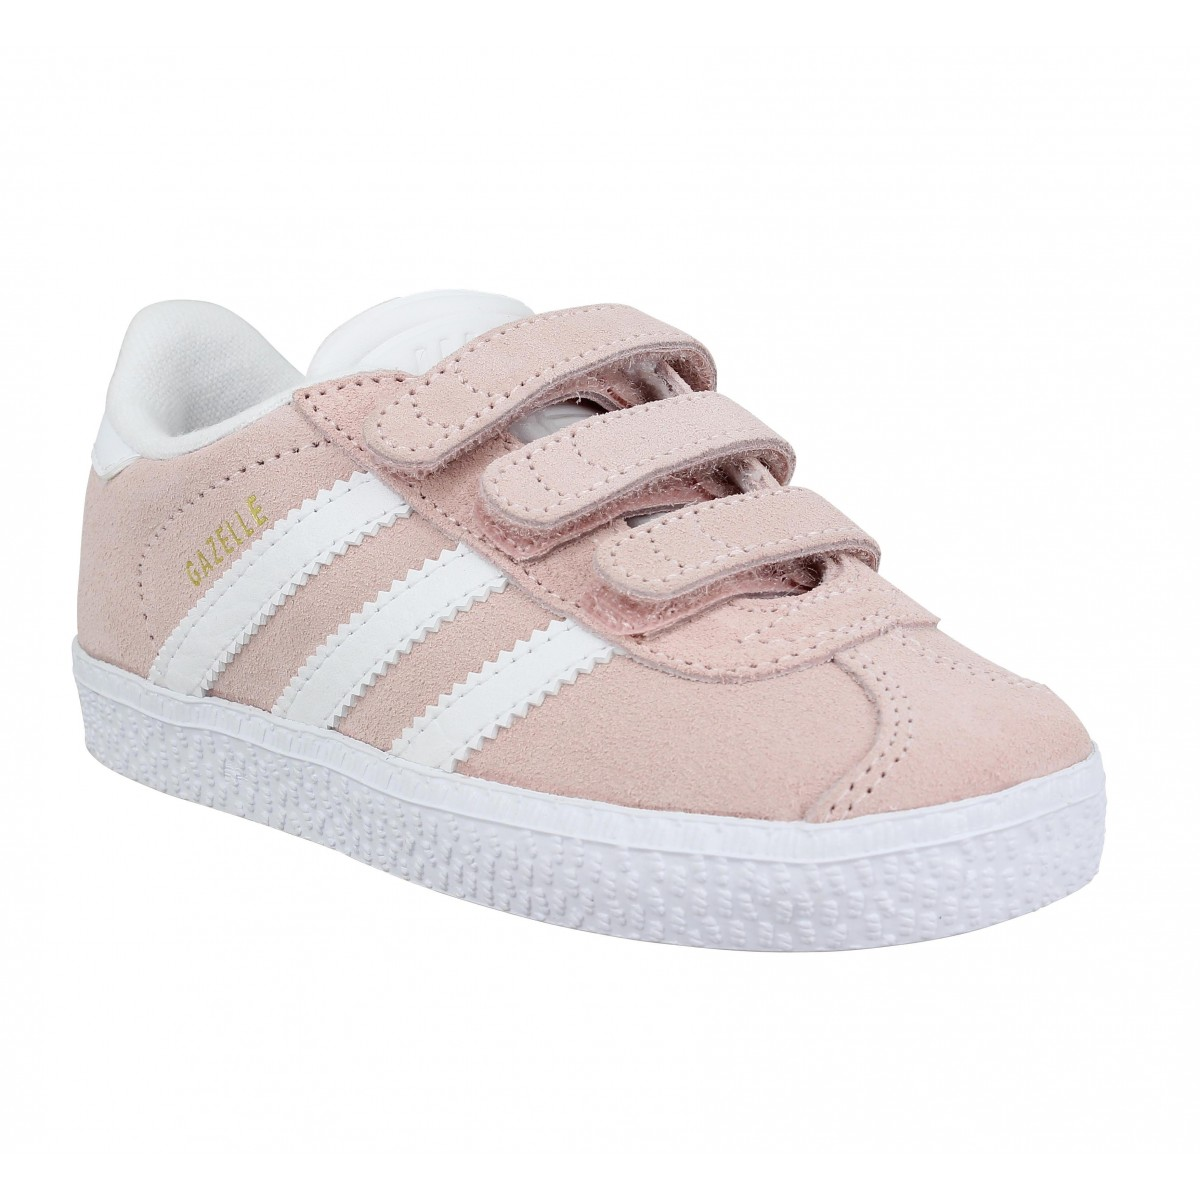 baskets adidas gazelle enfant